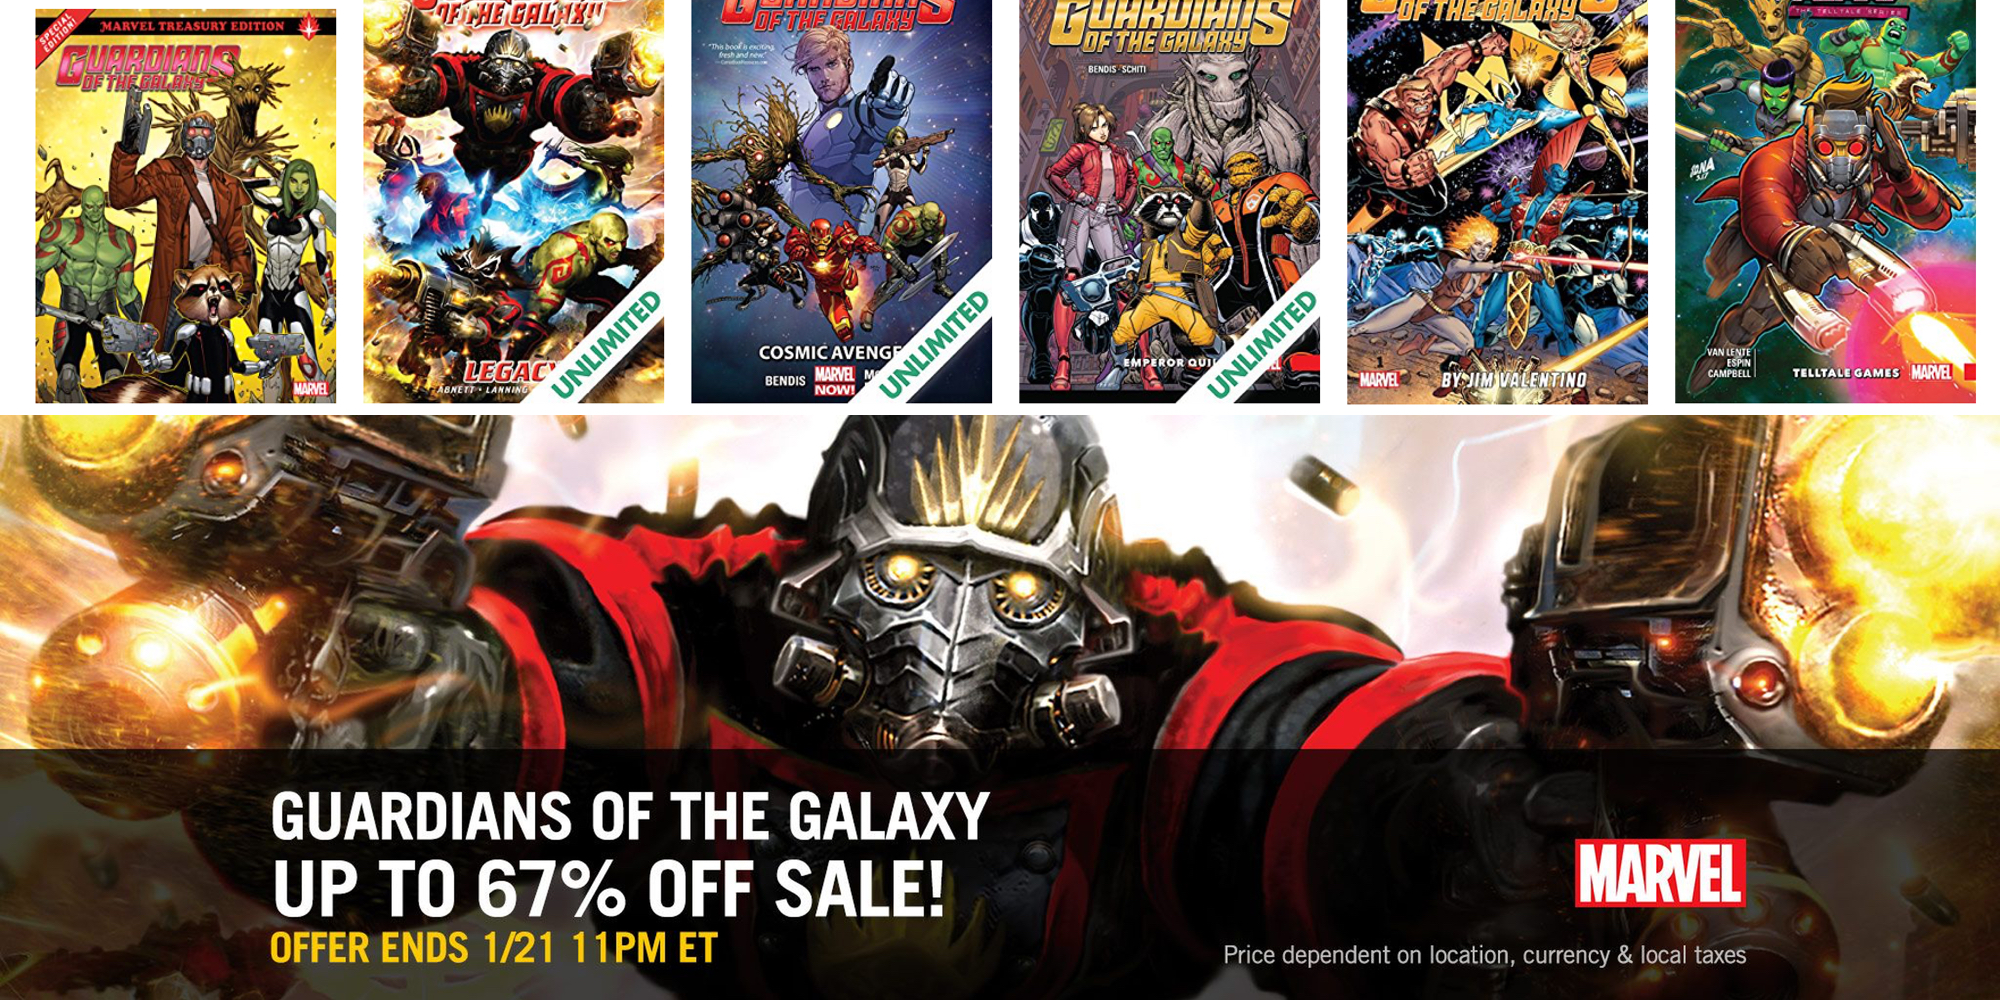 Save up to 67% on Guardians of the Galaxy digital comics and more from $1 at Comixology